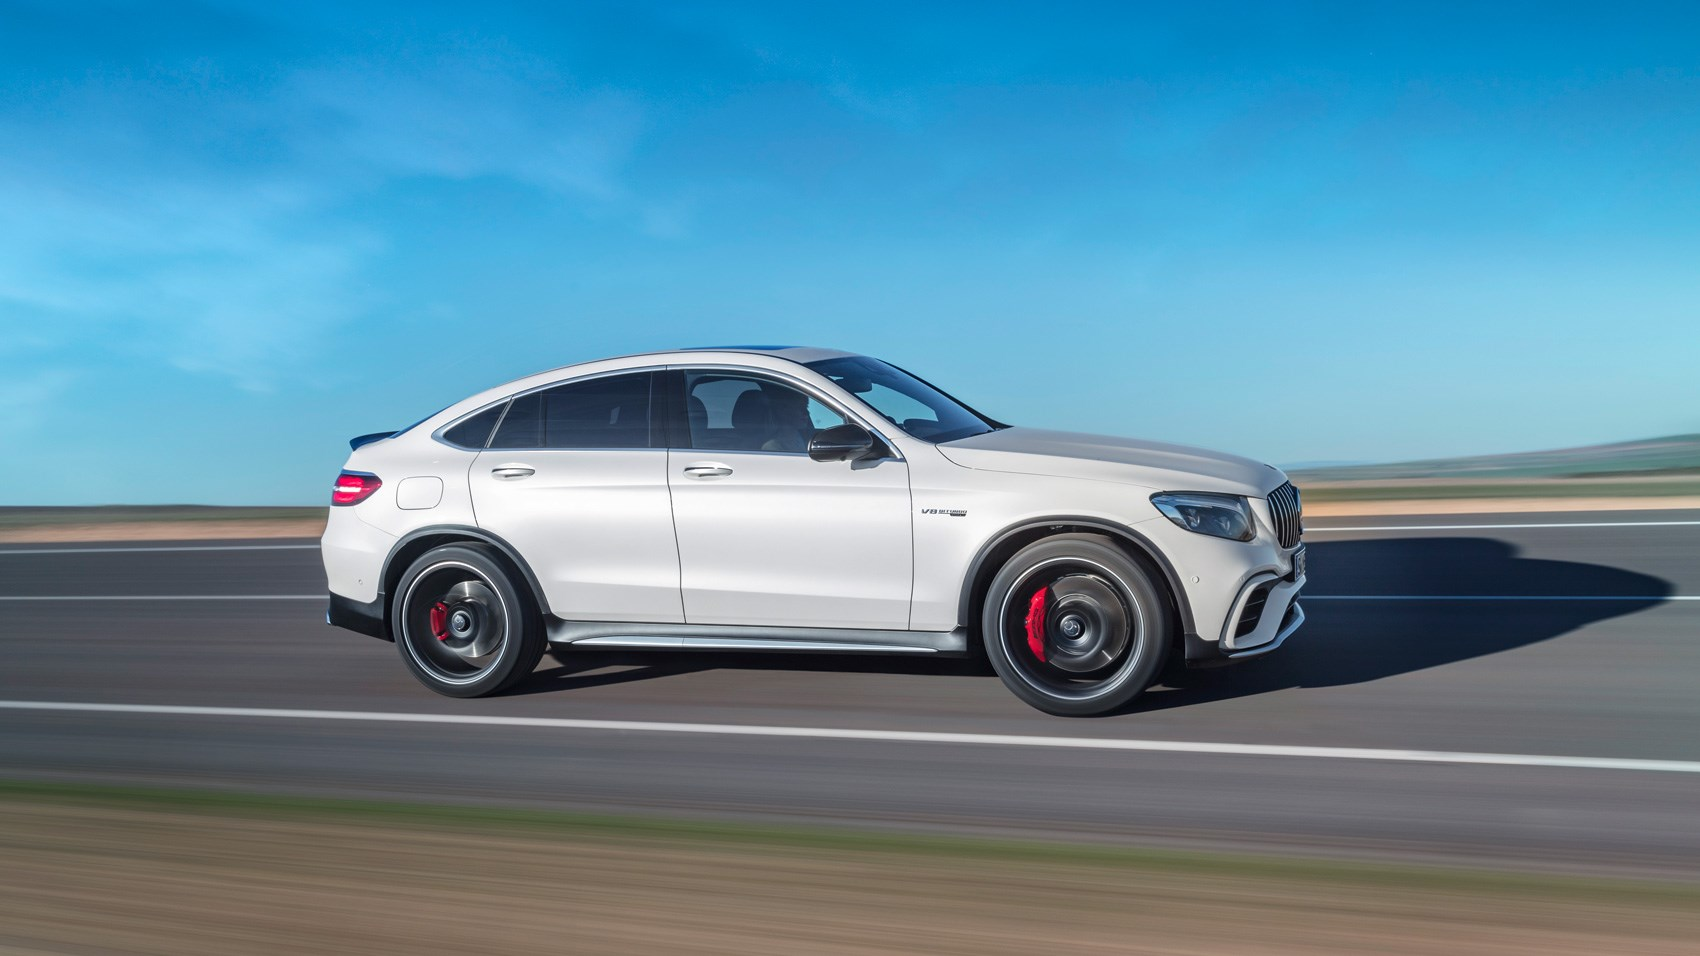 Mercedes Amg Glc63 S Review As Subtle As A Sledgehammer